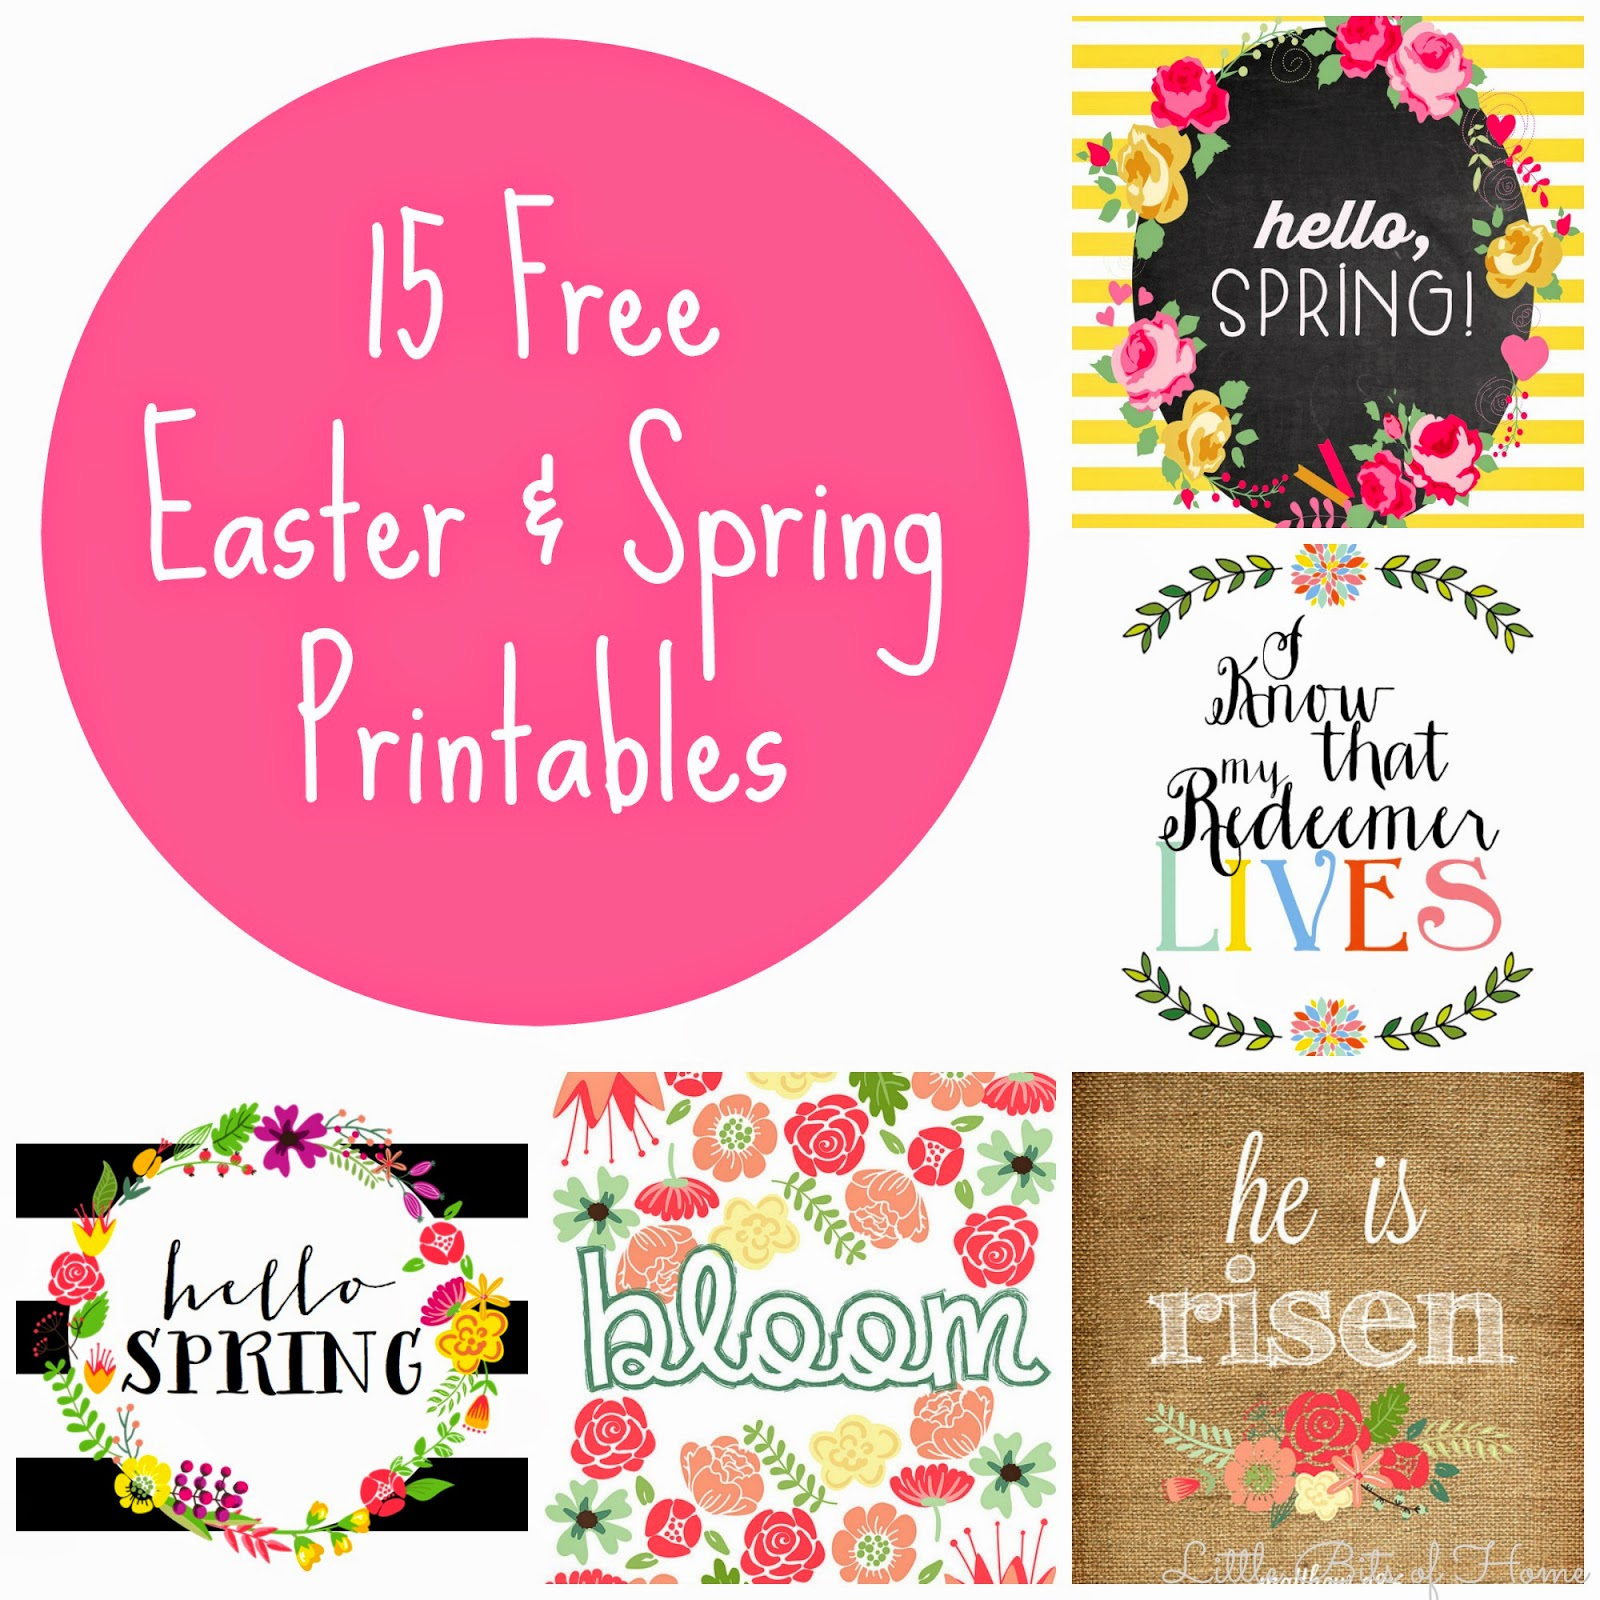 15 free spring and easter printables